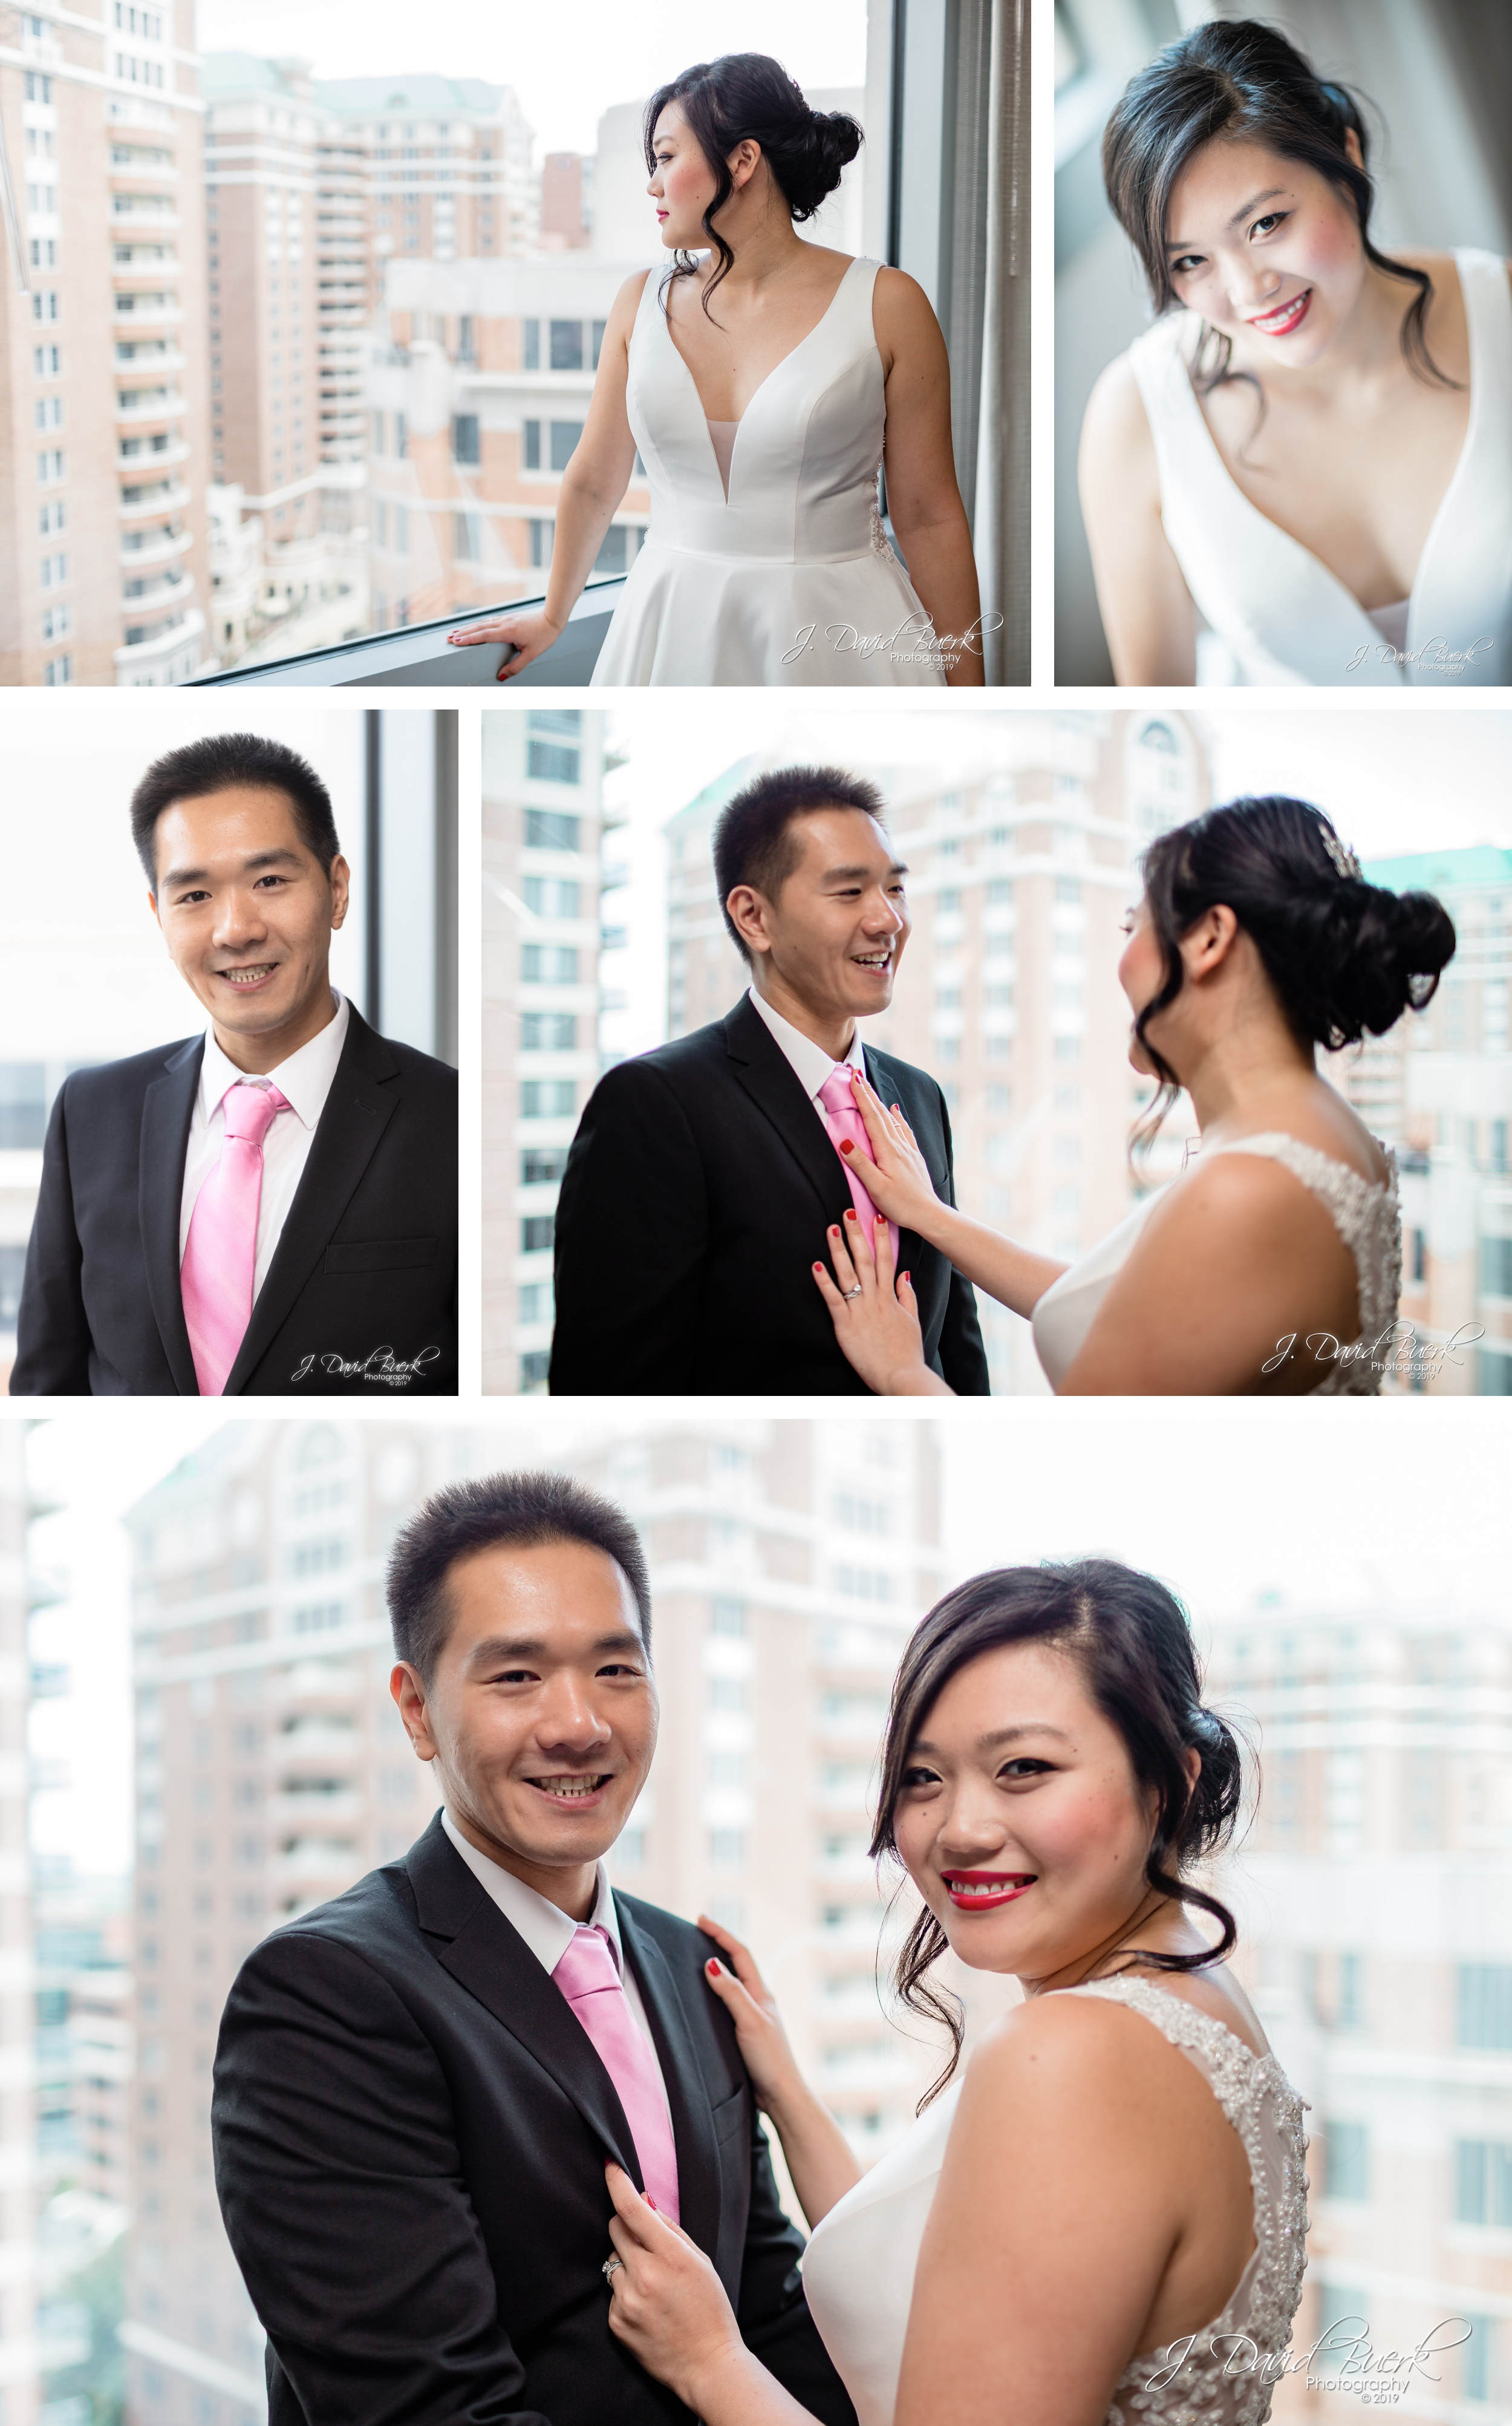 20190706 - David and Tiffany - Married 3.jpg